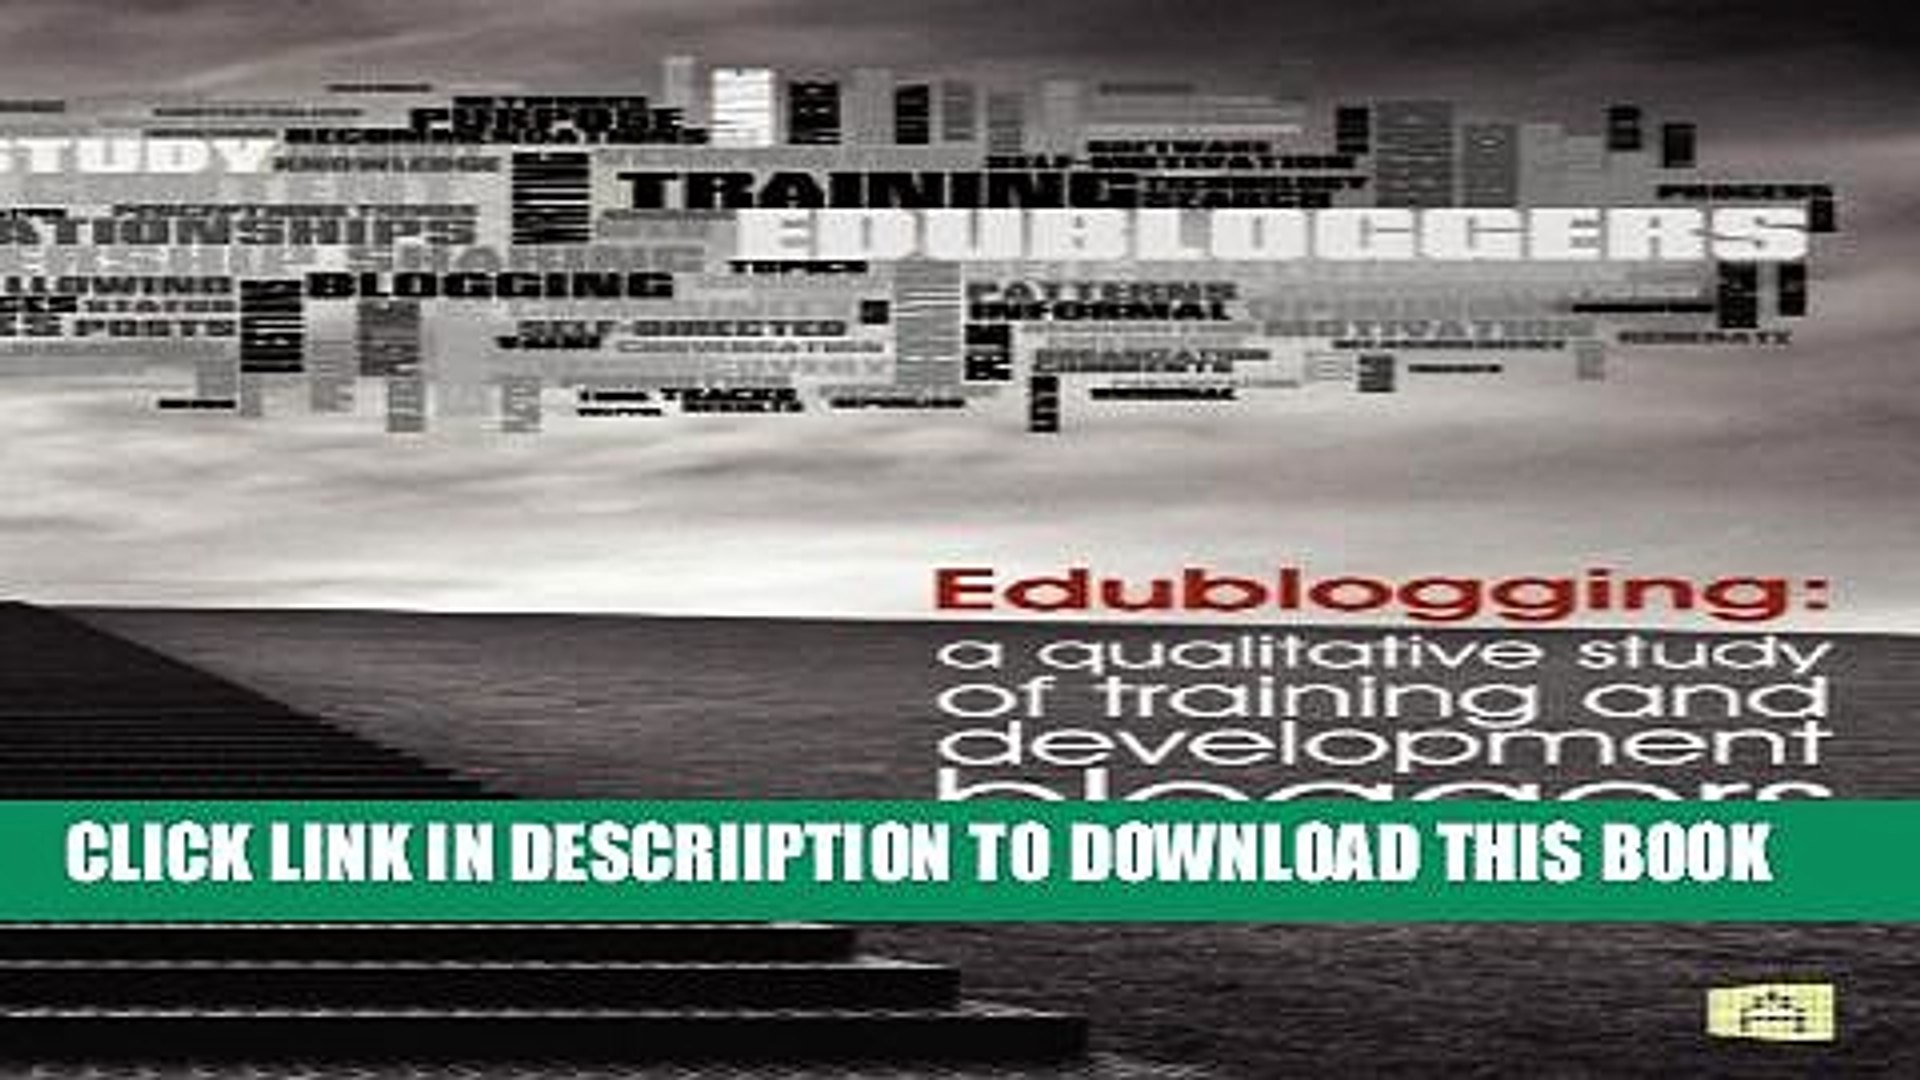 [New] Edublogging: A Qualitative Study of Training and Development Bloggers Exclusive Full Ebook